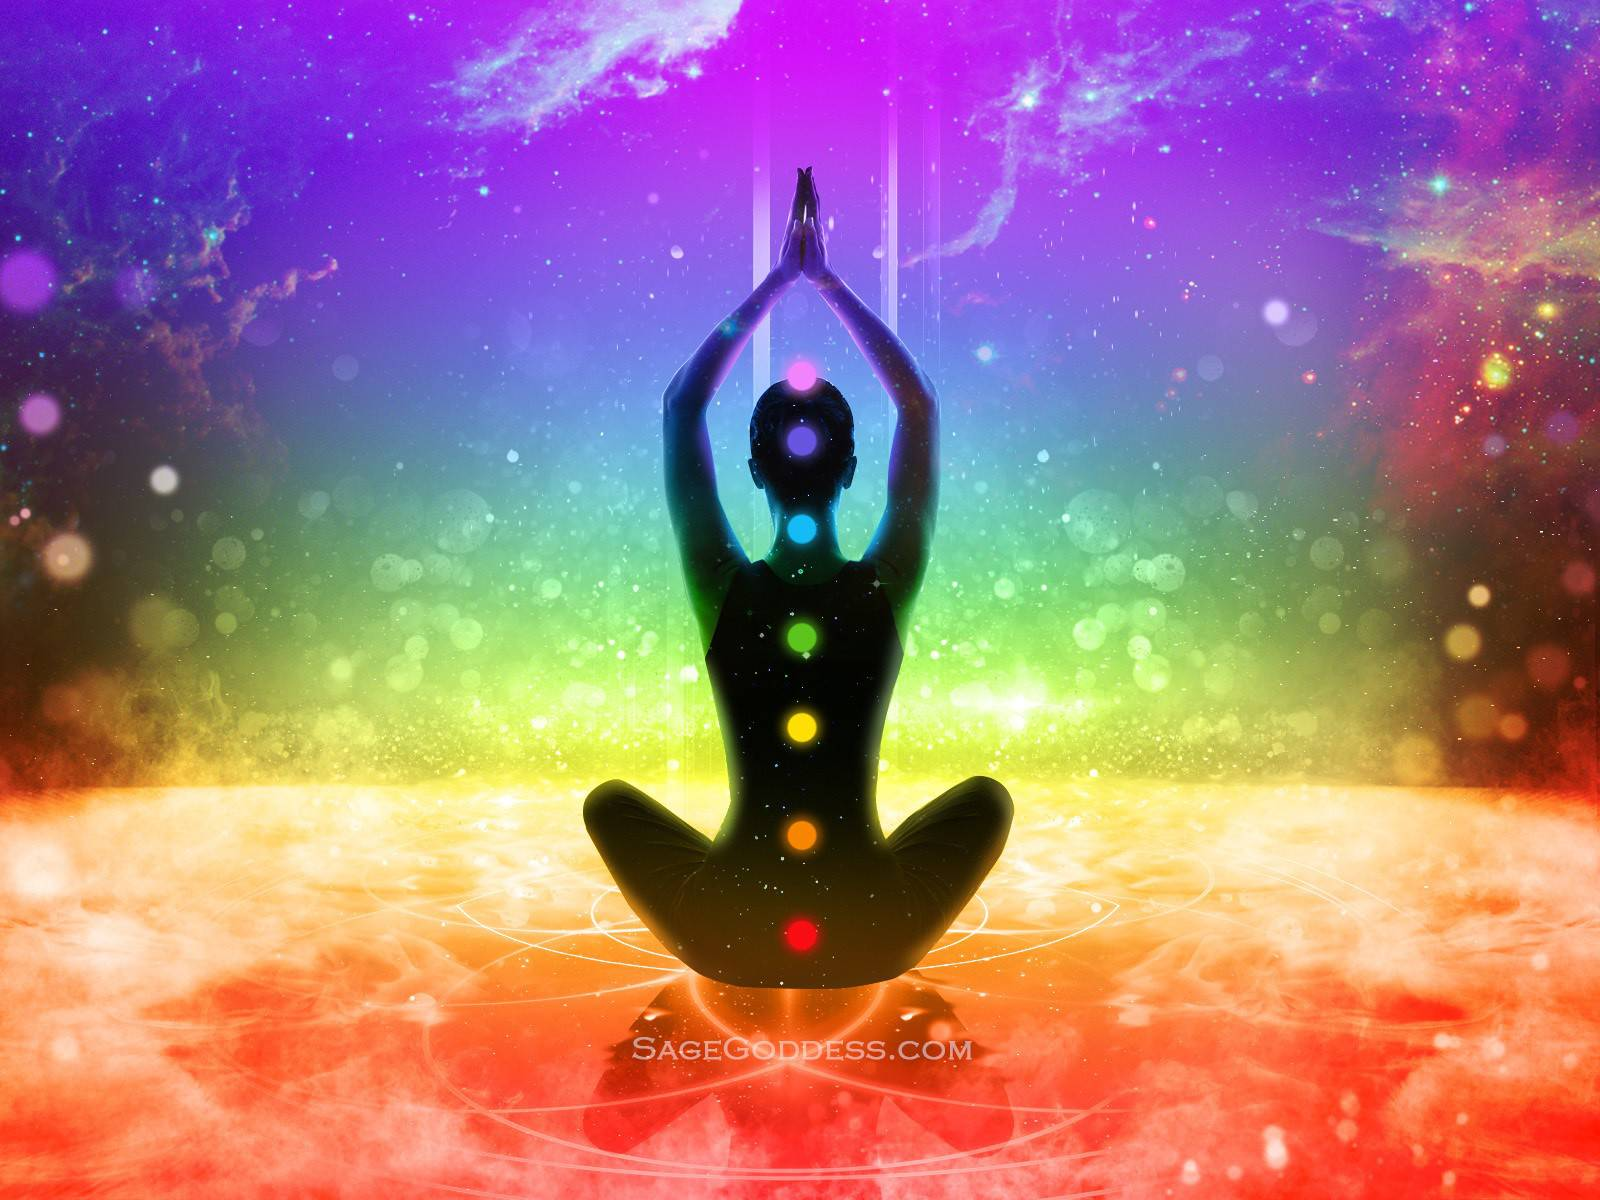 Free Custom Sage Goddess Downloadable Chakra Wallpaper